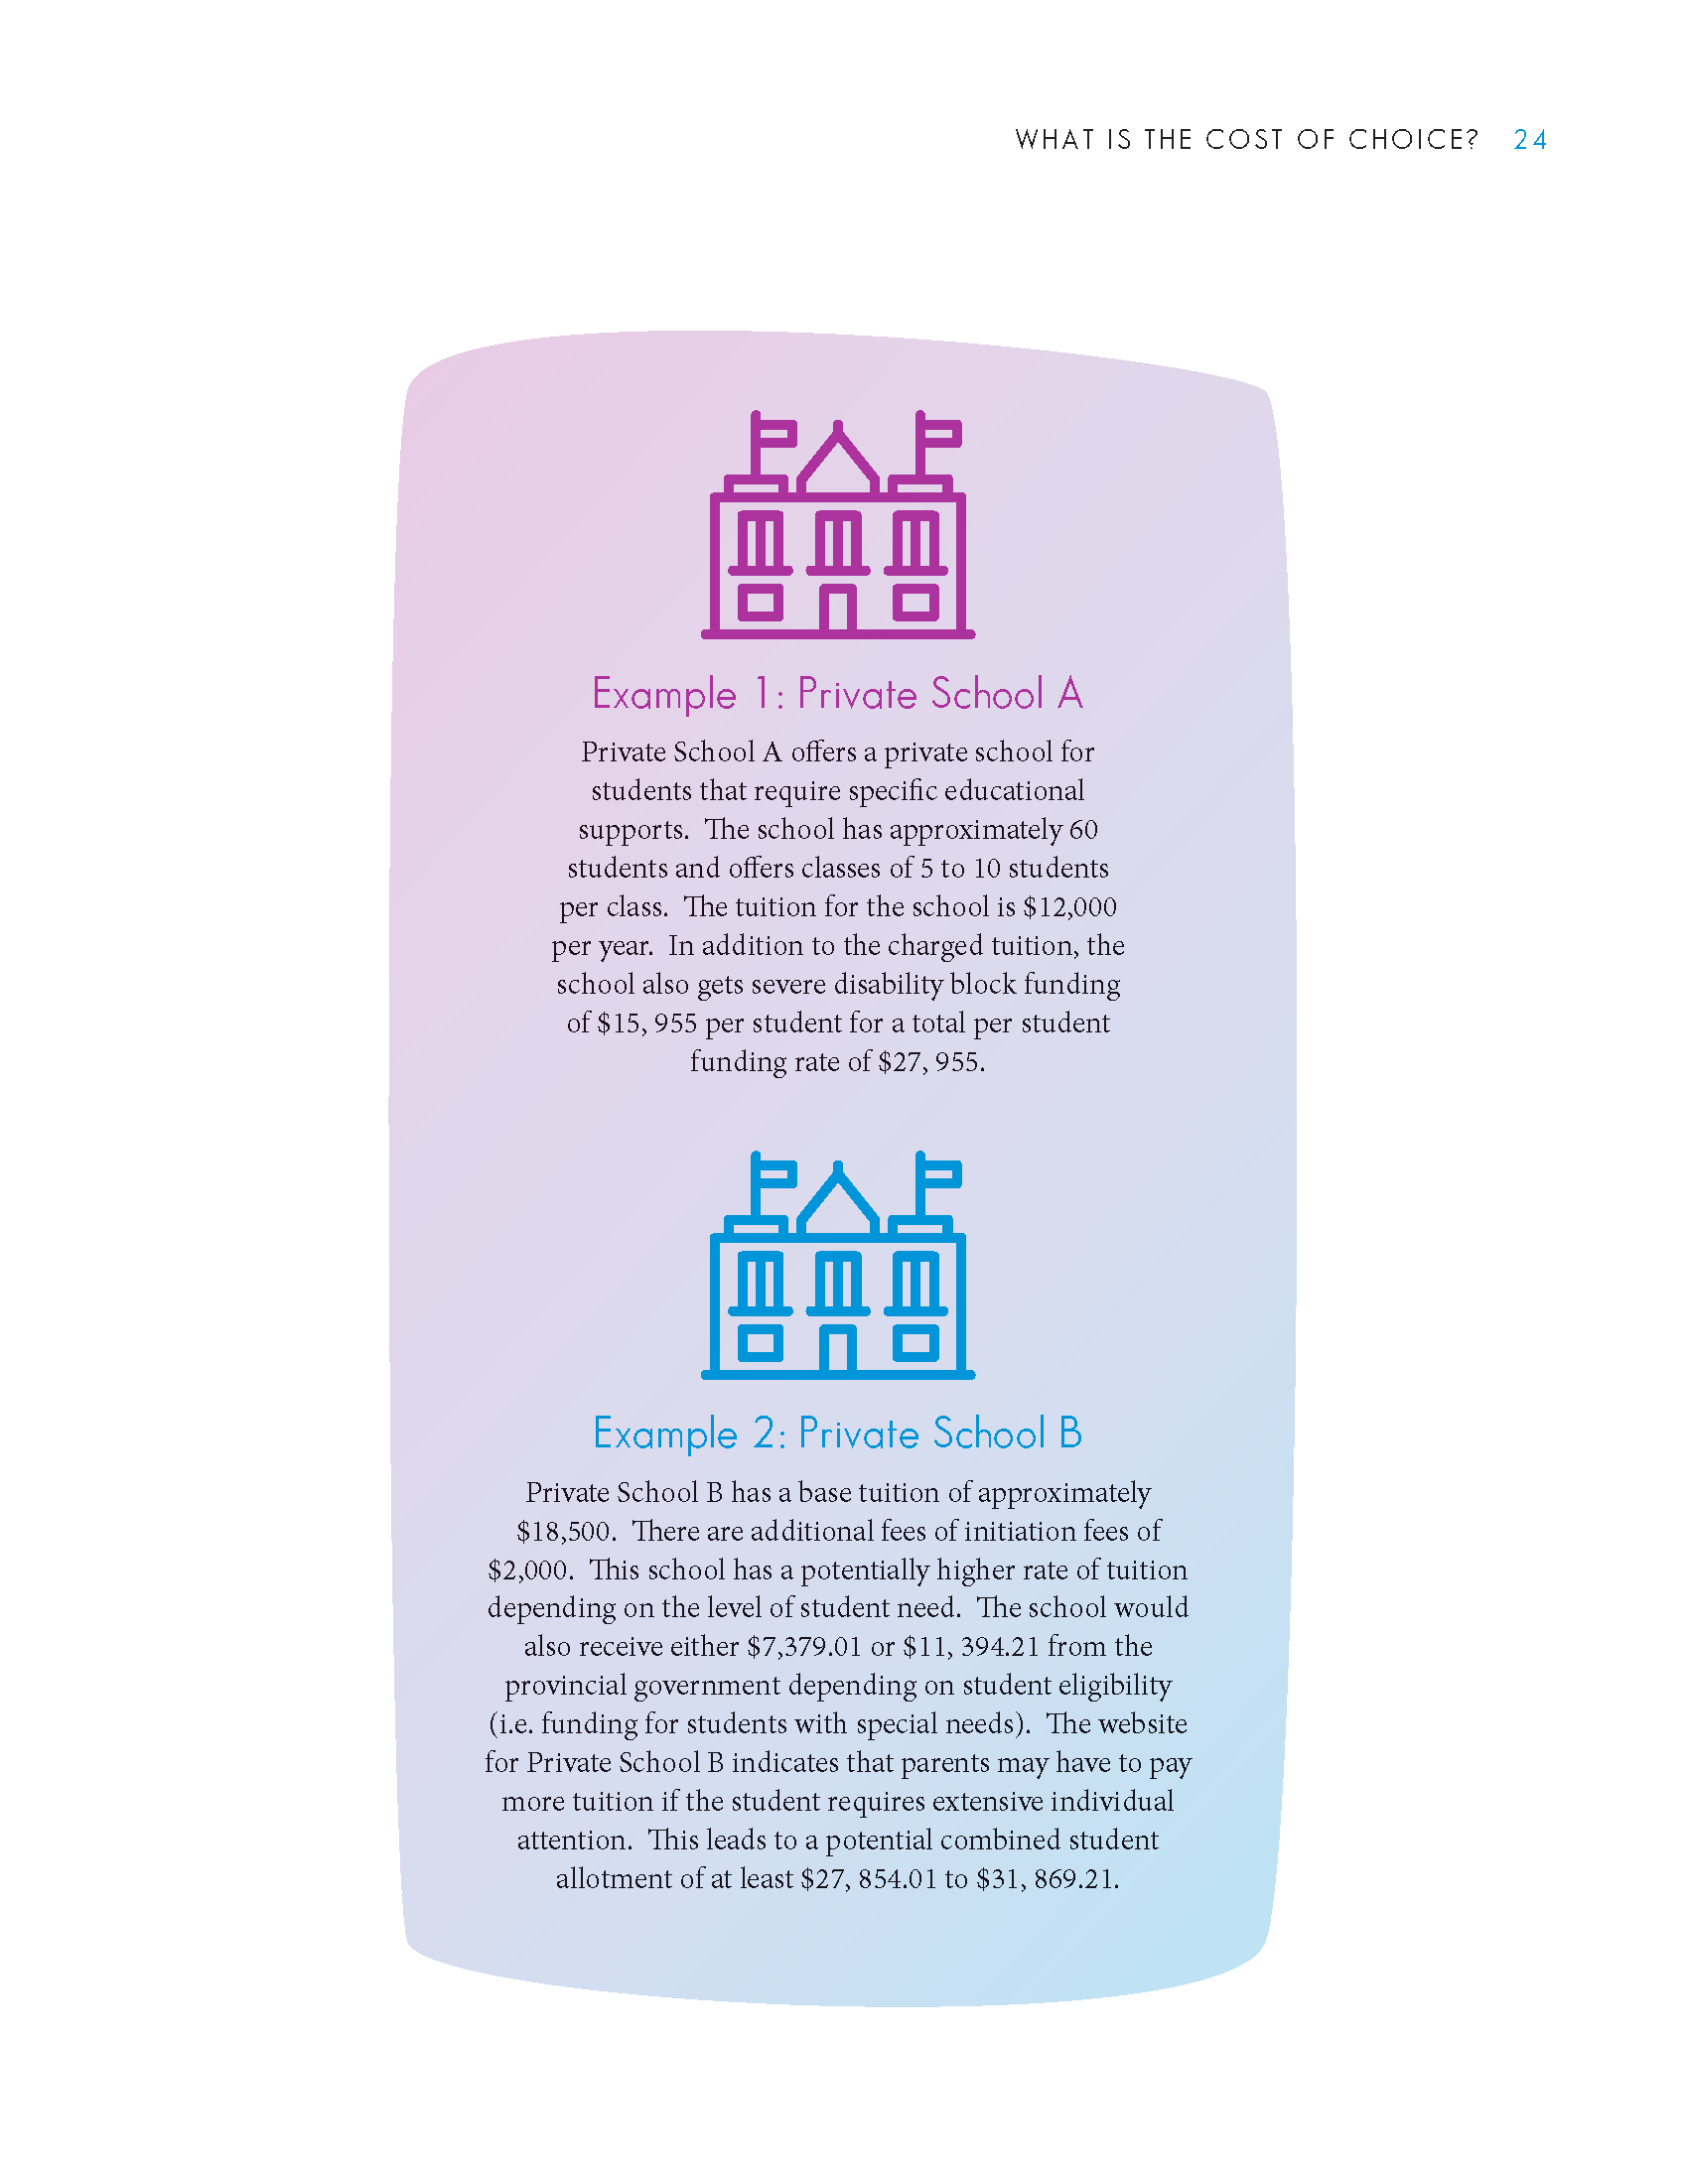 PSBAA-Cost-of-Choice-2017_Page_25.png